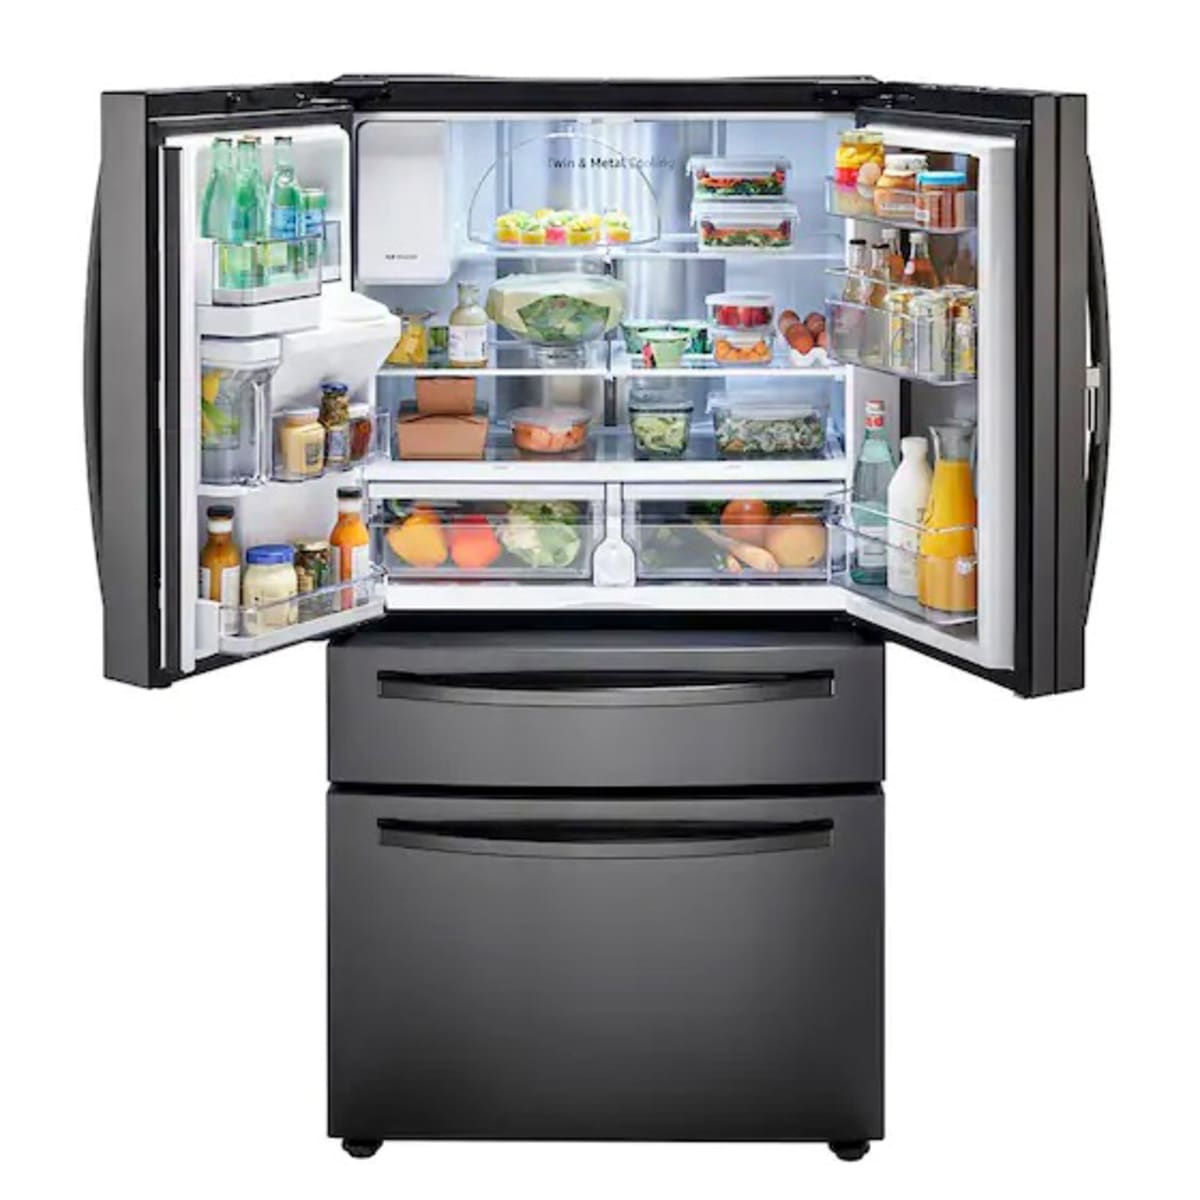 Samsung Rf28r7351sg French Door Refrigerator Review Reviewed